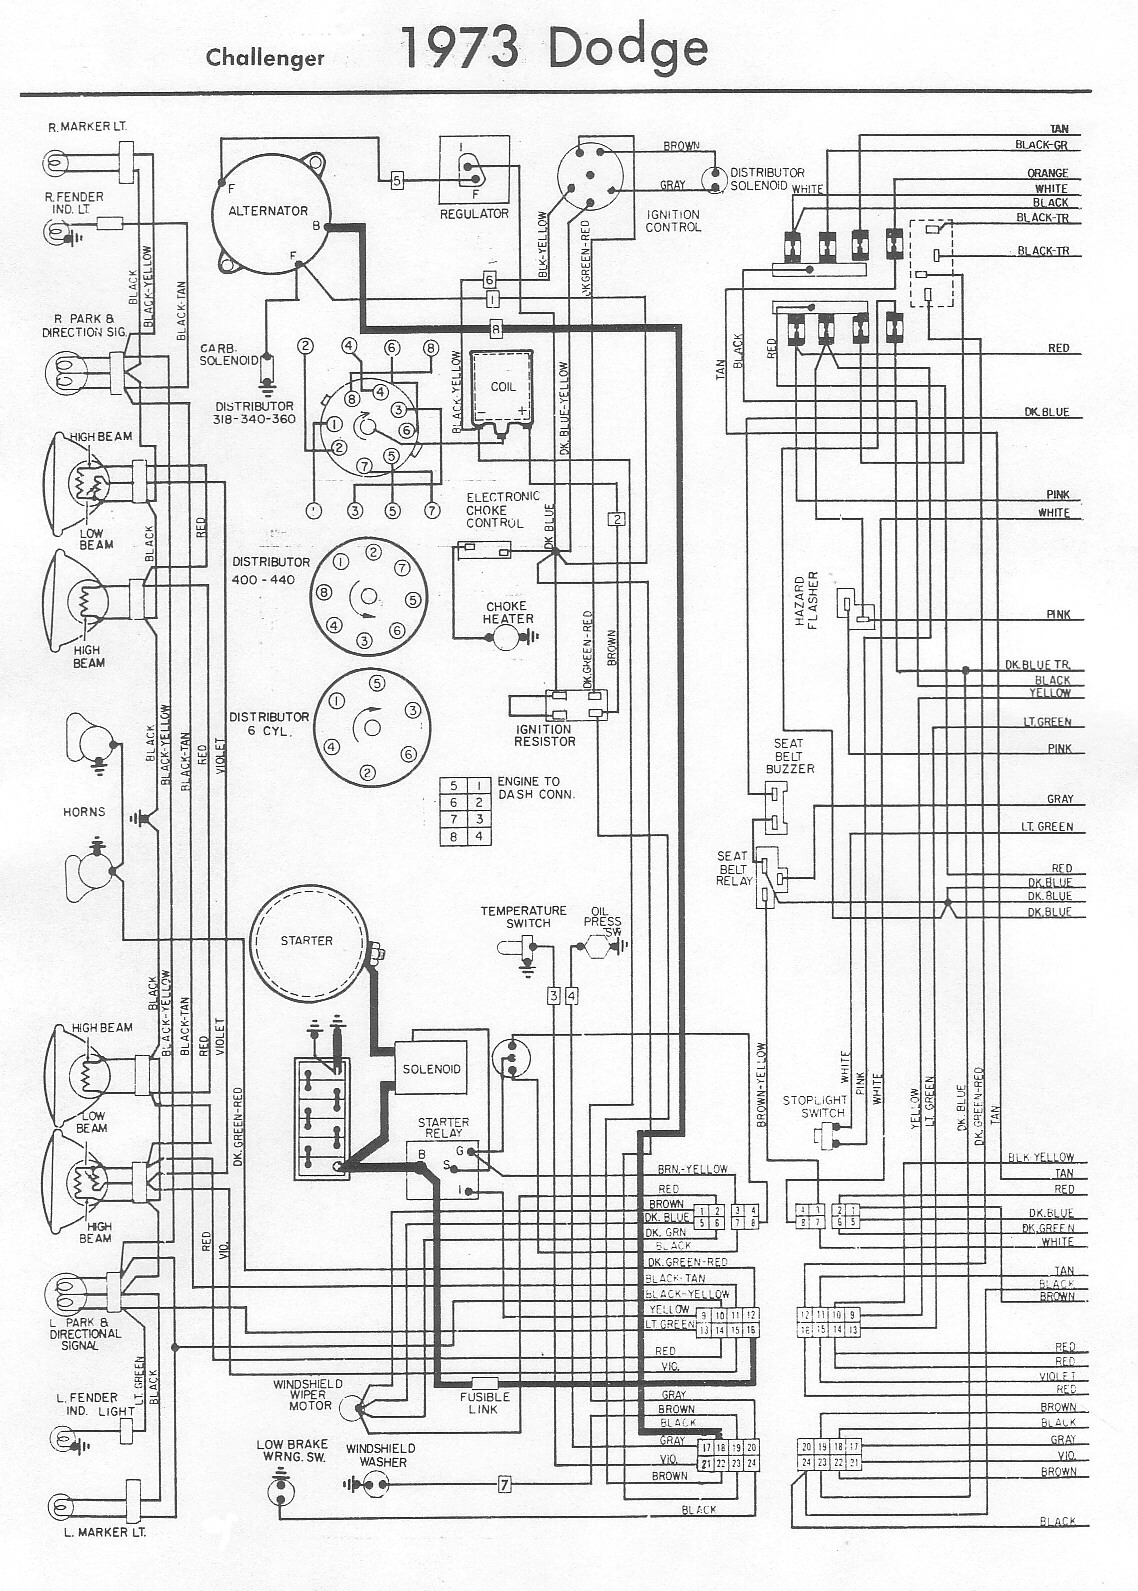 Dodge Challenger Wiring Diagram Gallery Of Ram Radio Image Not Found Or Type Unknown